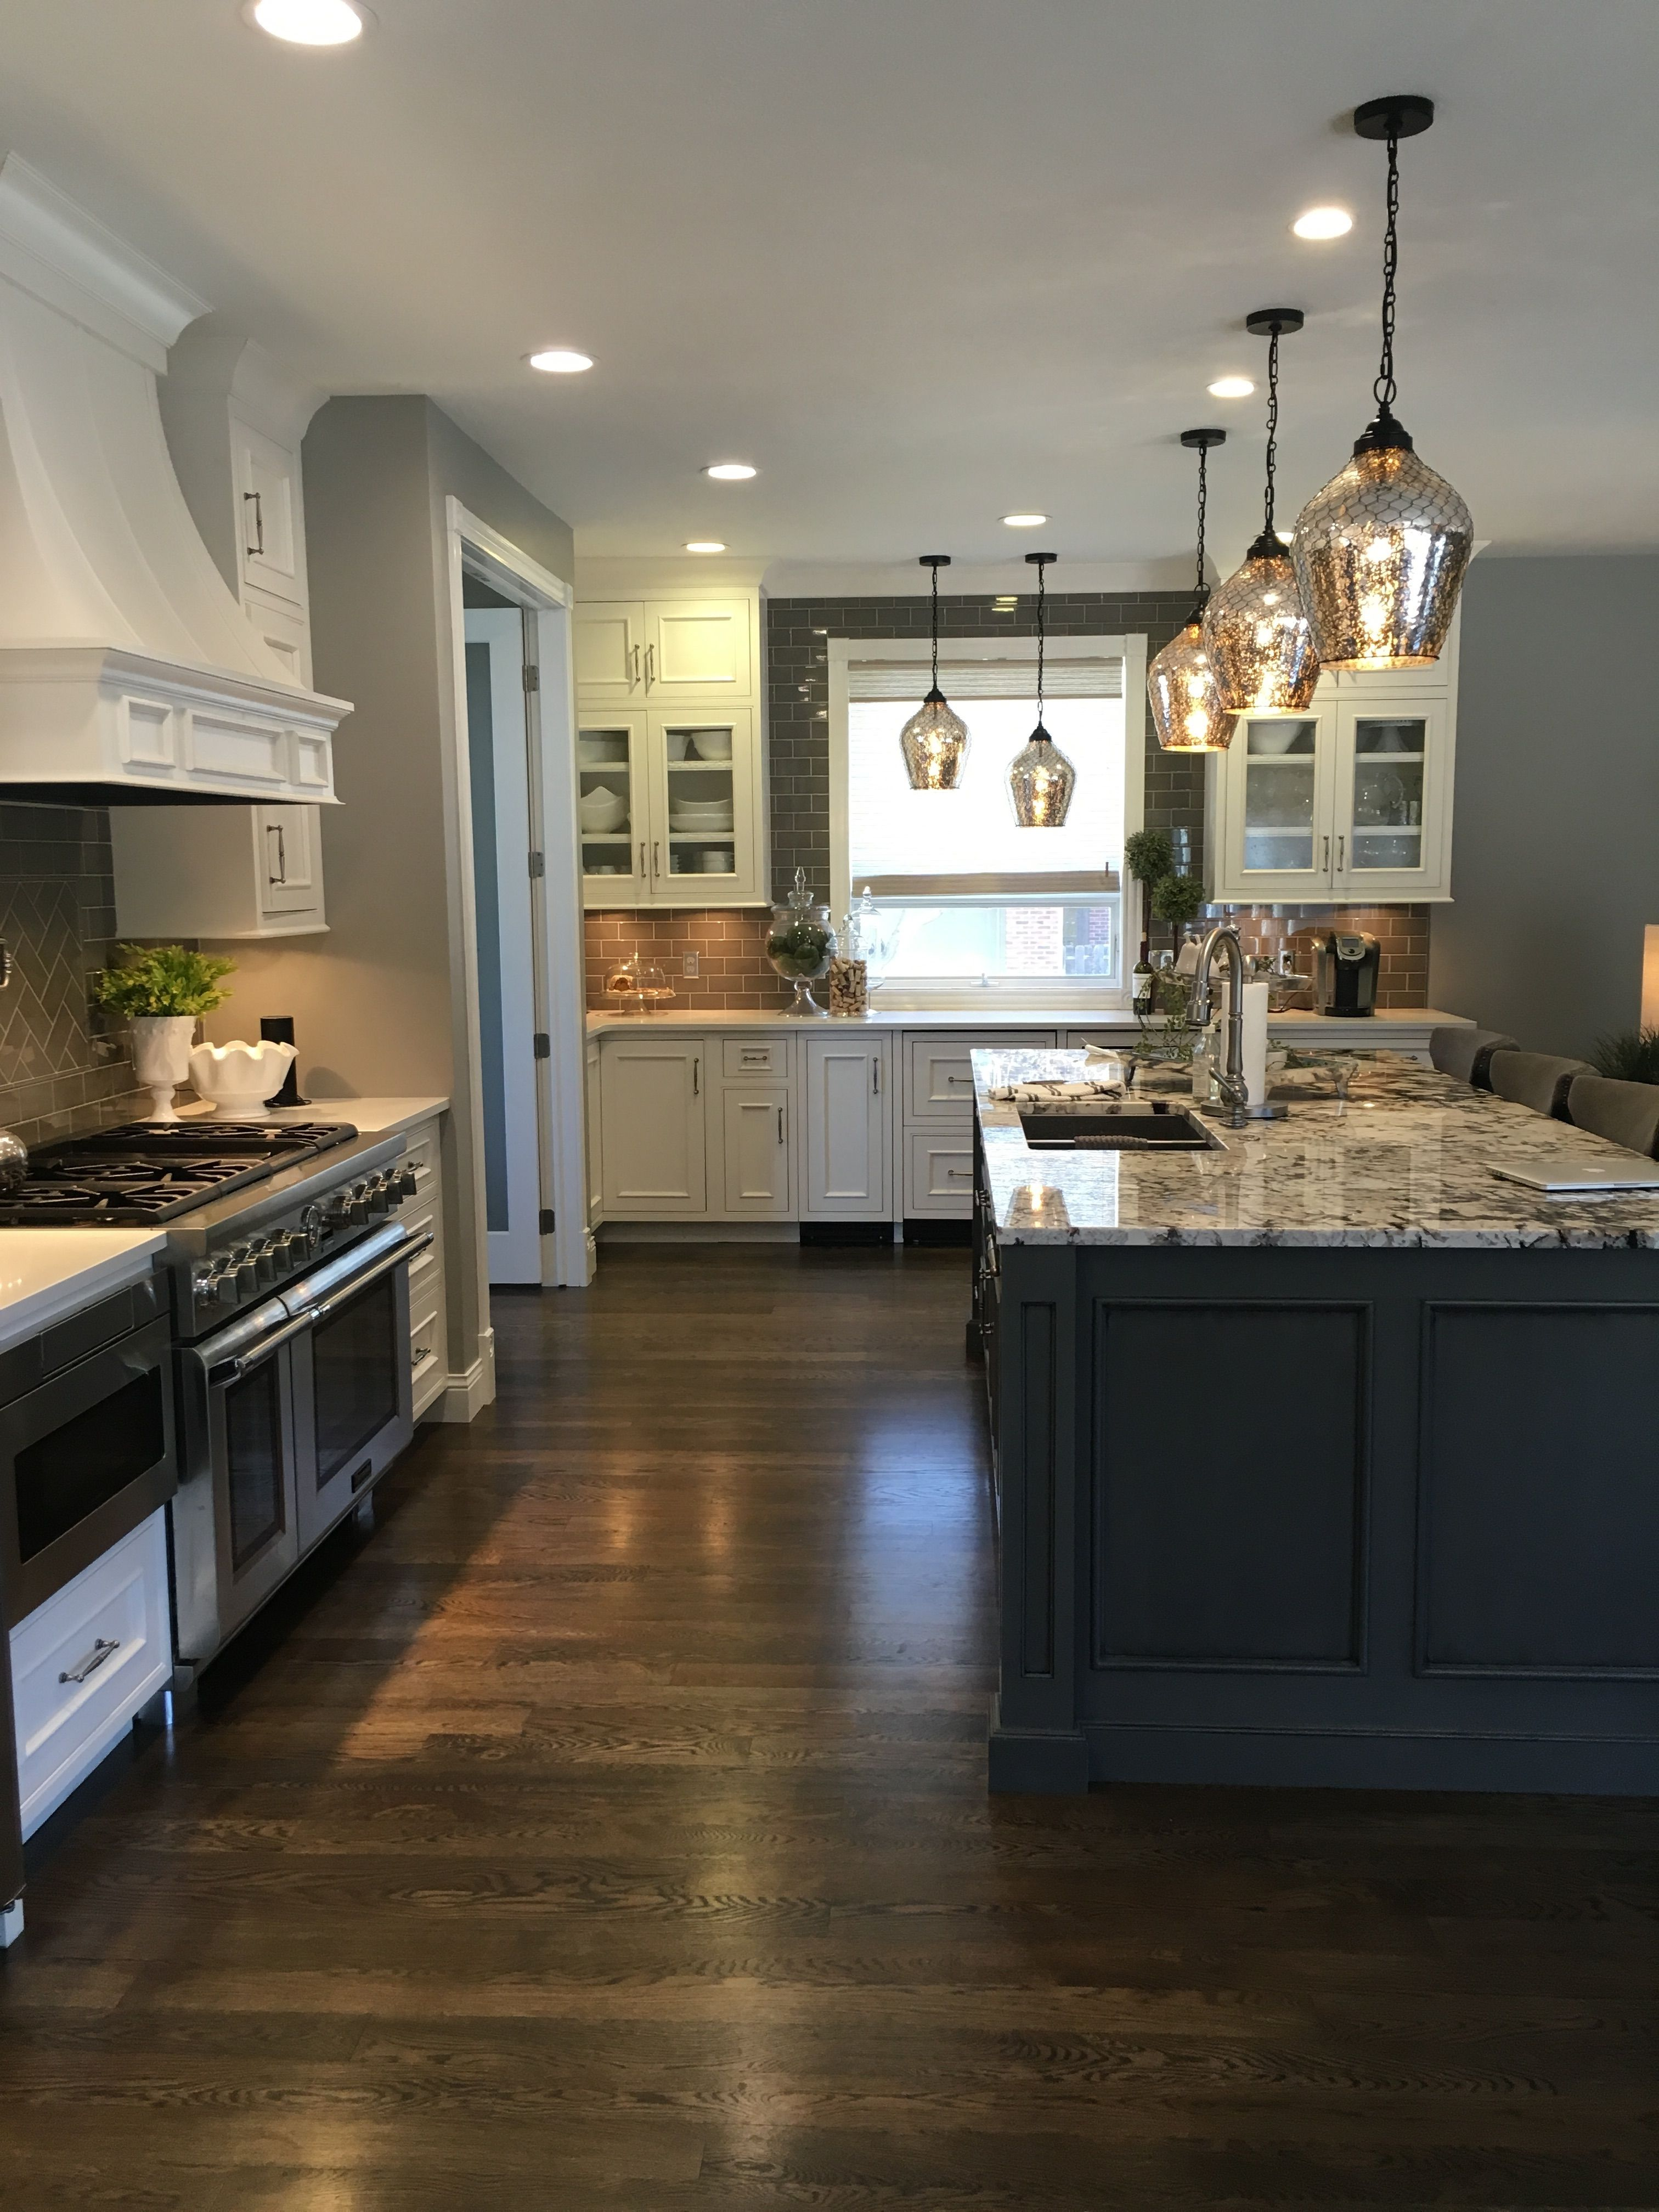 Dark Kitchen Island With Light Grey Floor: 35 Striking ...